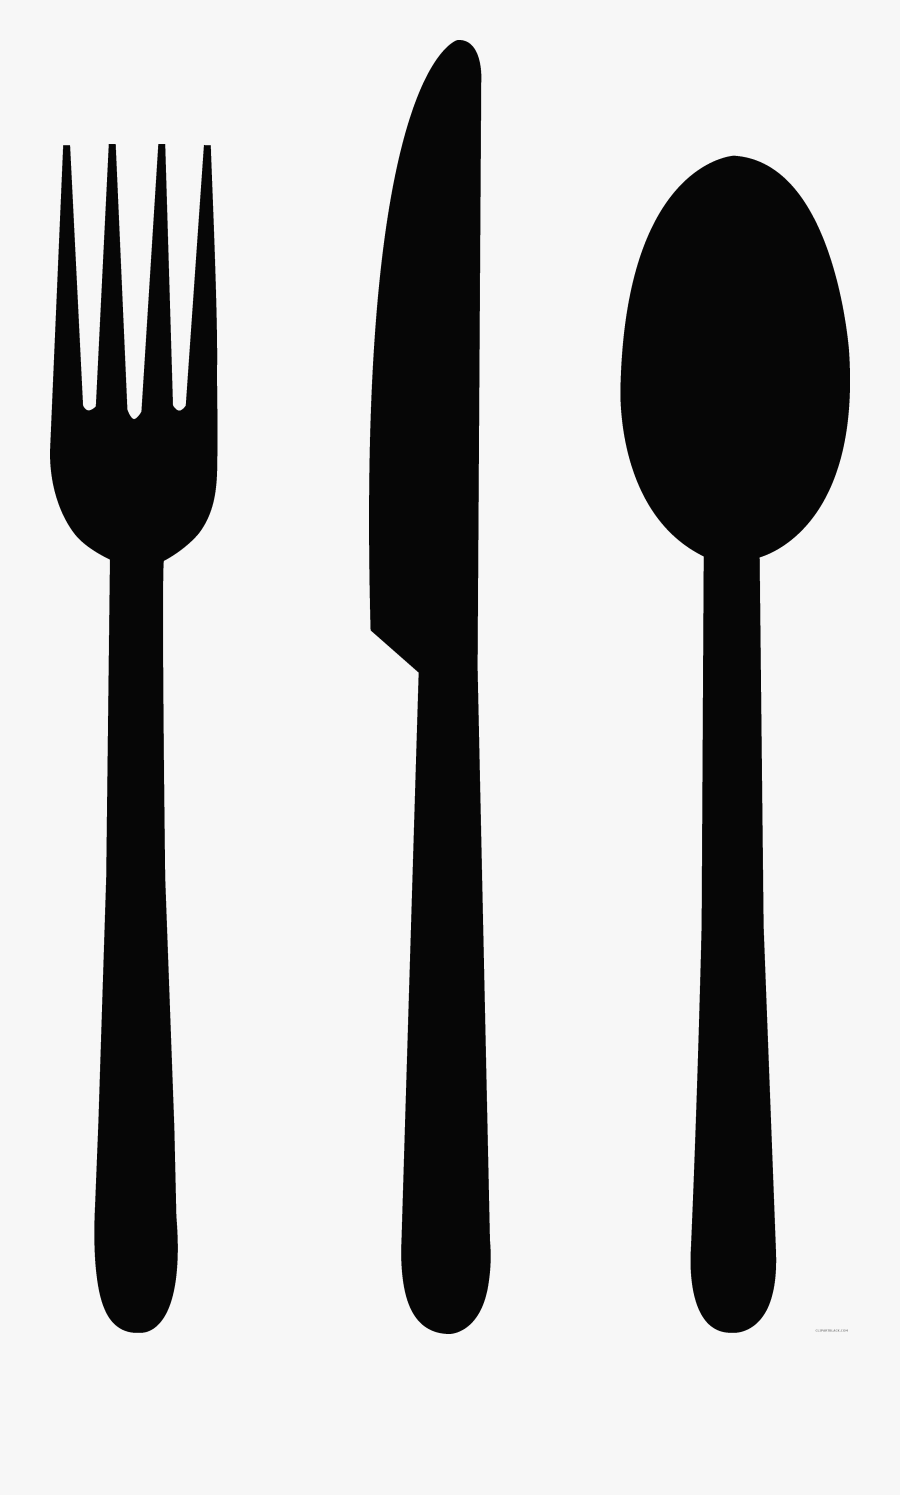 Fork Clipart Black - Fork Spoon And Knife Clipart, Transparent Clipart